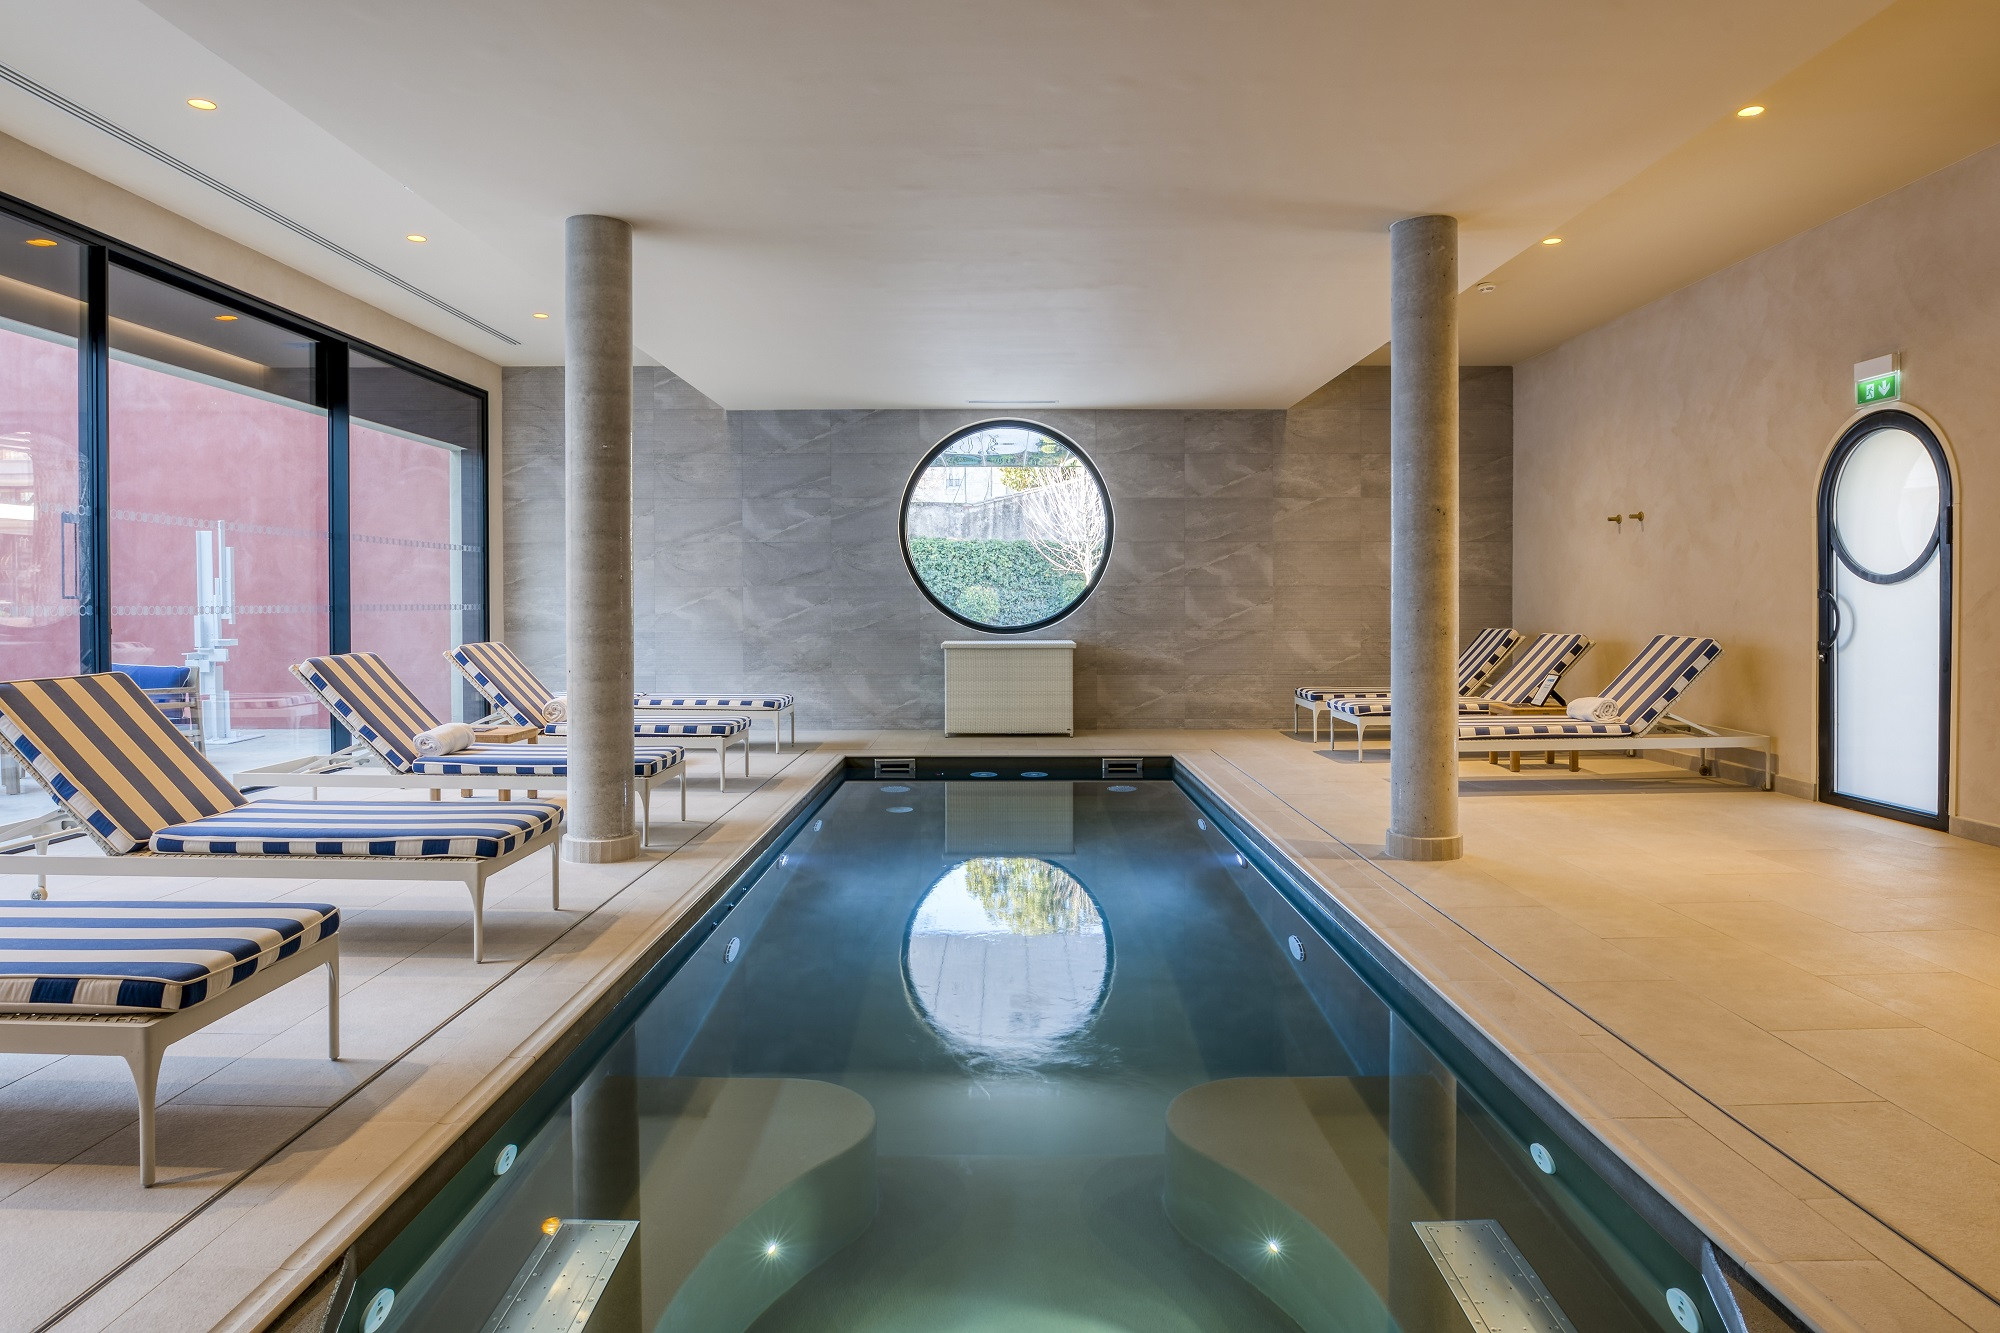 91/Nimes Imperator/PageSpa/maison_albar_hotels_l_imperator_codage_spa_piscine_swimming_pool.jpg